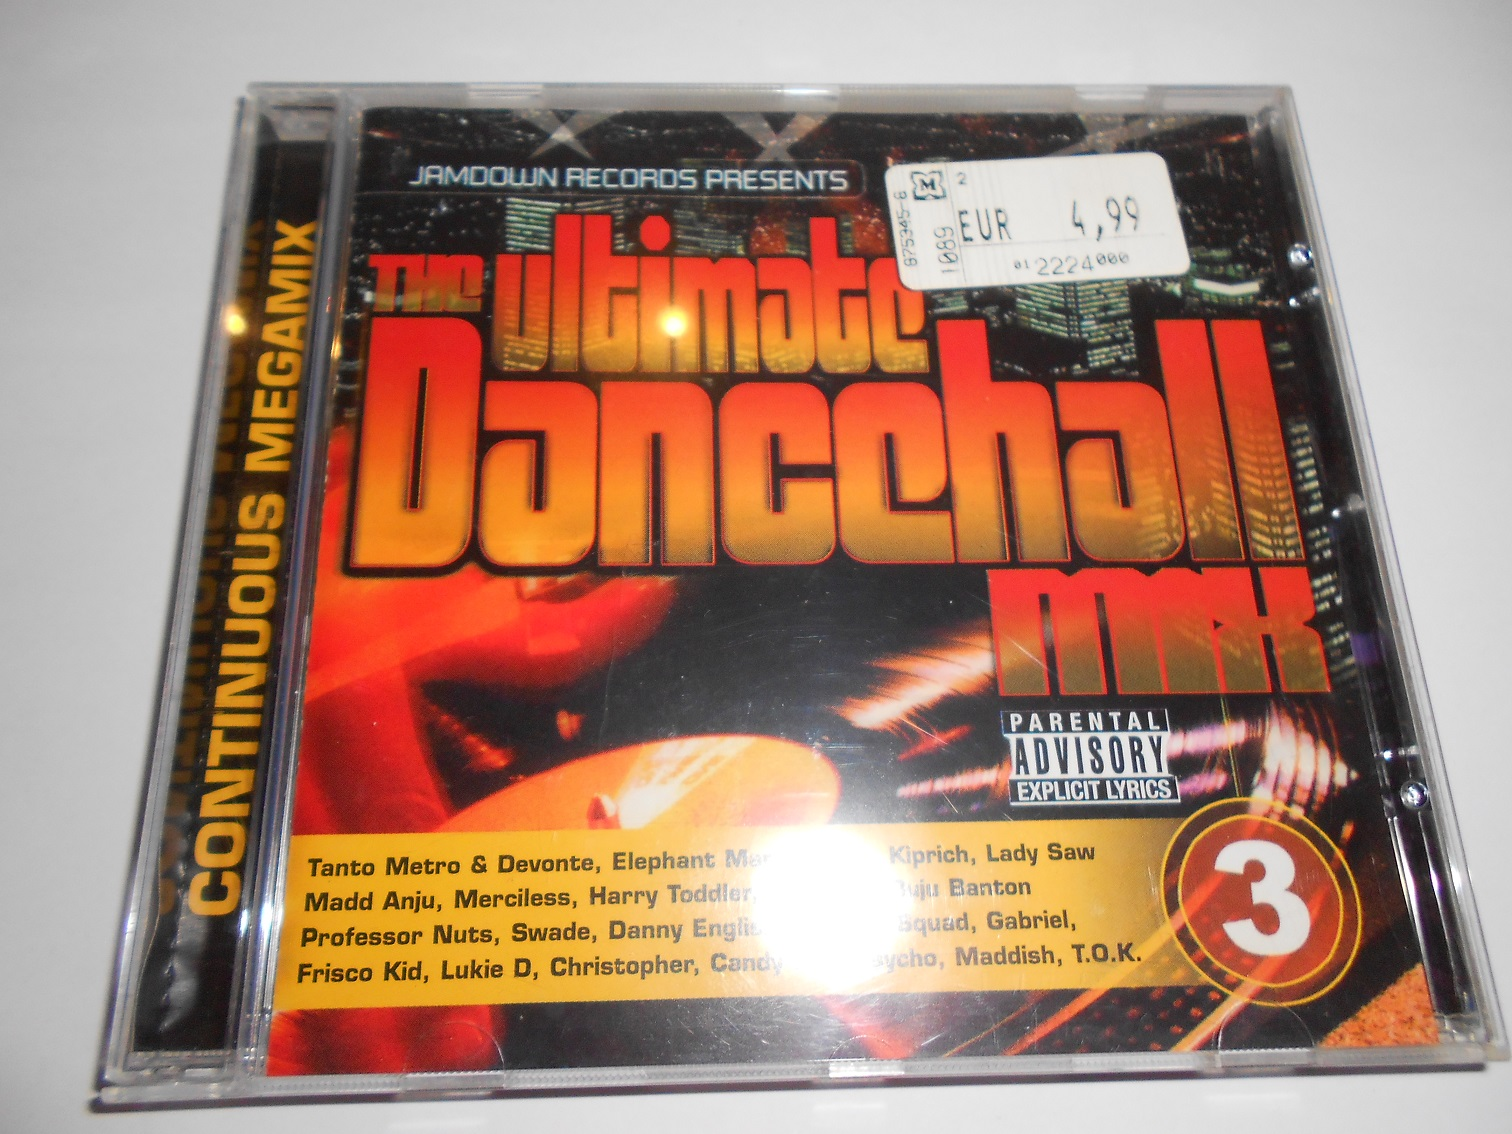 V/A - The Ultimate Dancehall Mix Vol.3 (CD)